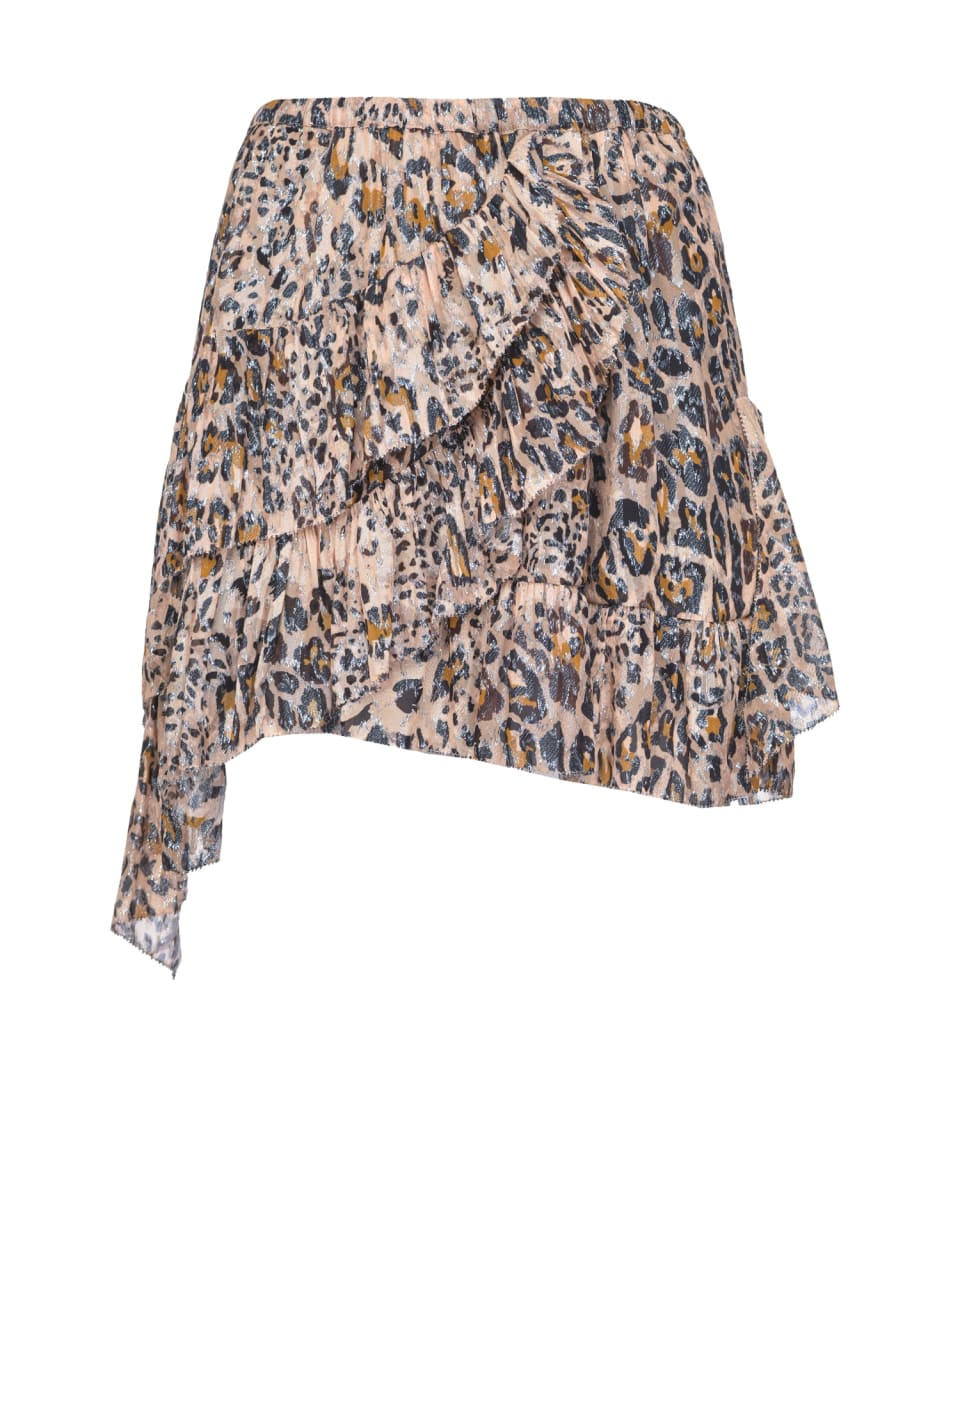 Fil coupé leopard print mini skirt - Pinko